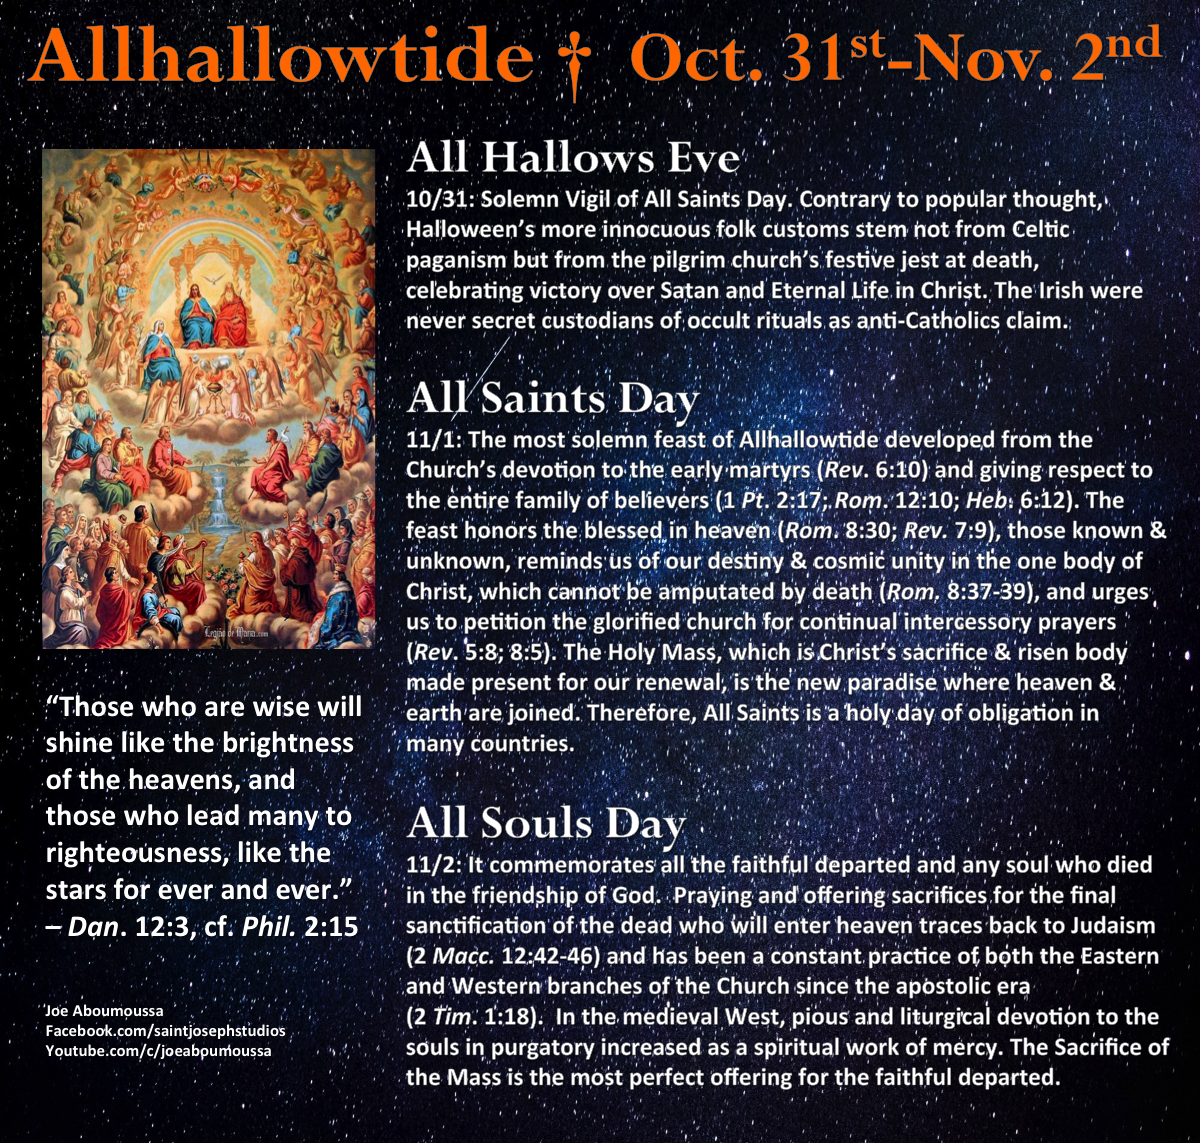 Pinlynne Dunker On Halloween (With Images) | Catholic Within Catholic Saint Of The Day Calendar